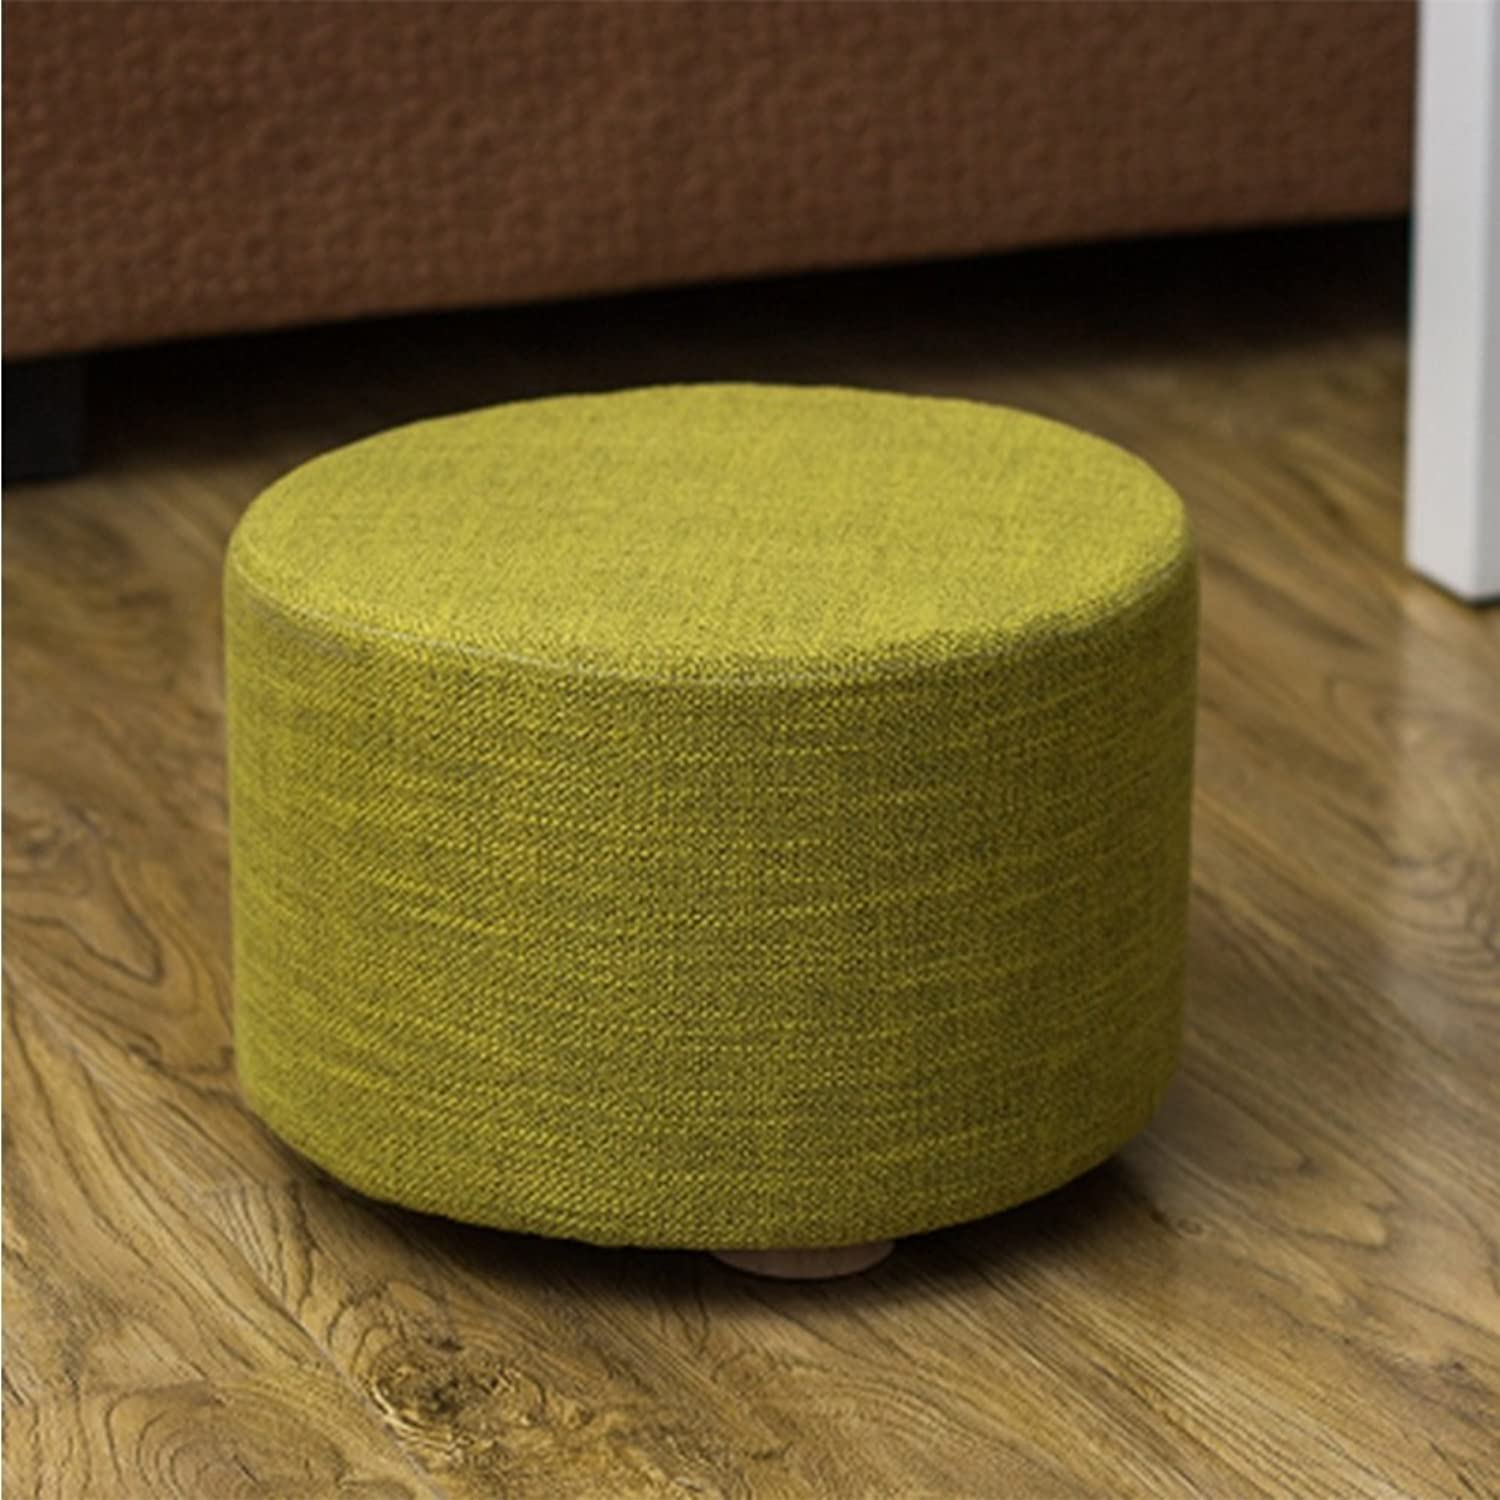 FORWIN US Stool- Stool Fabric Small shoes Bench Round Wooden Pouffe Stool Dwarf Pier Coffee Table Stool Sitting Pier Sofa Stool 28 X 28 X 20 cm Stool (color   E)